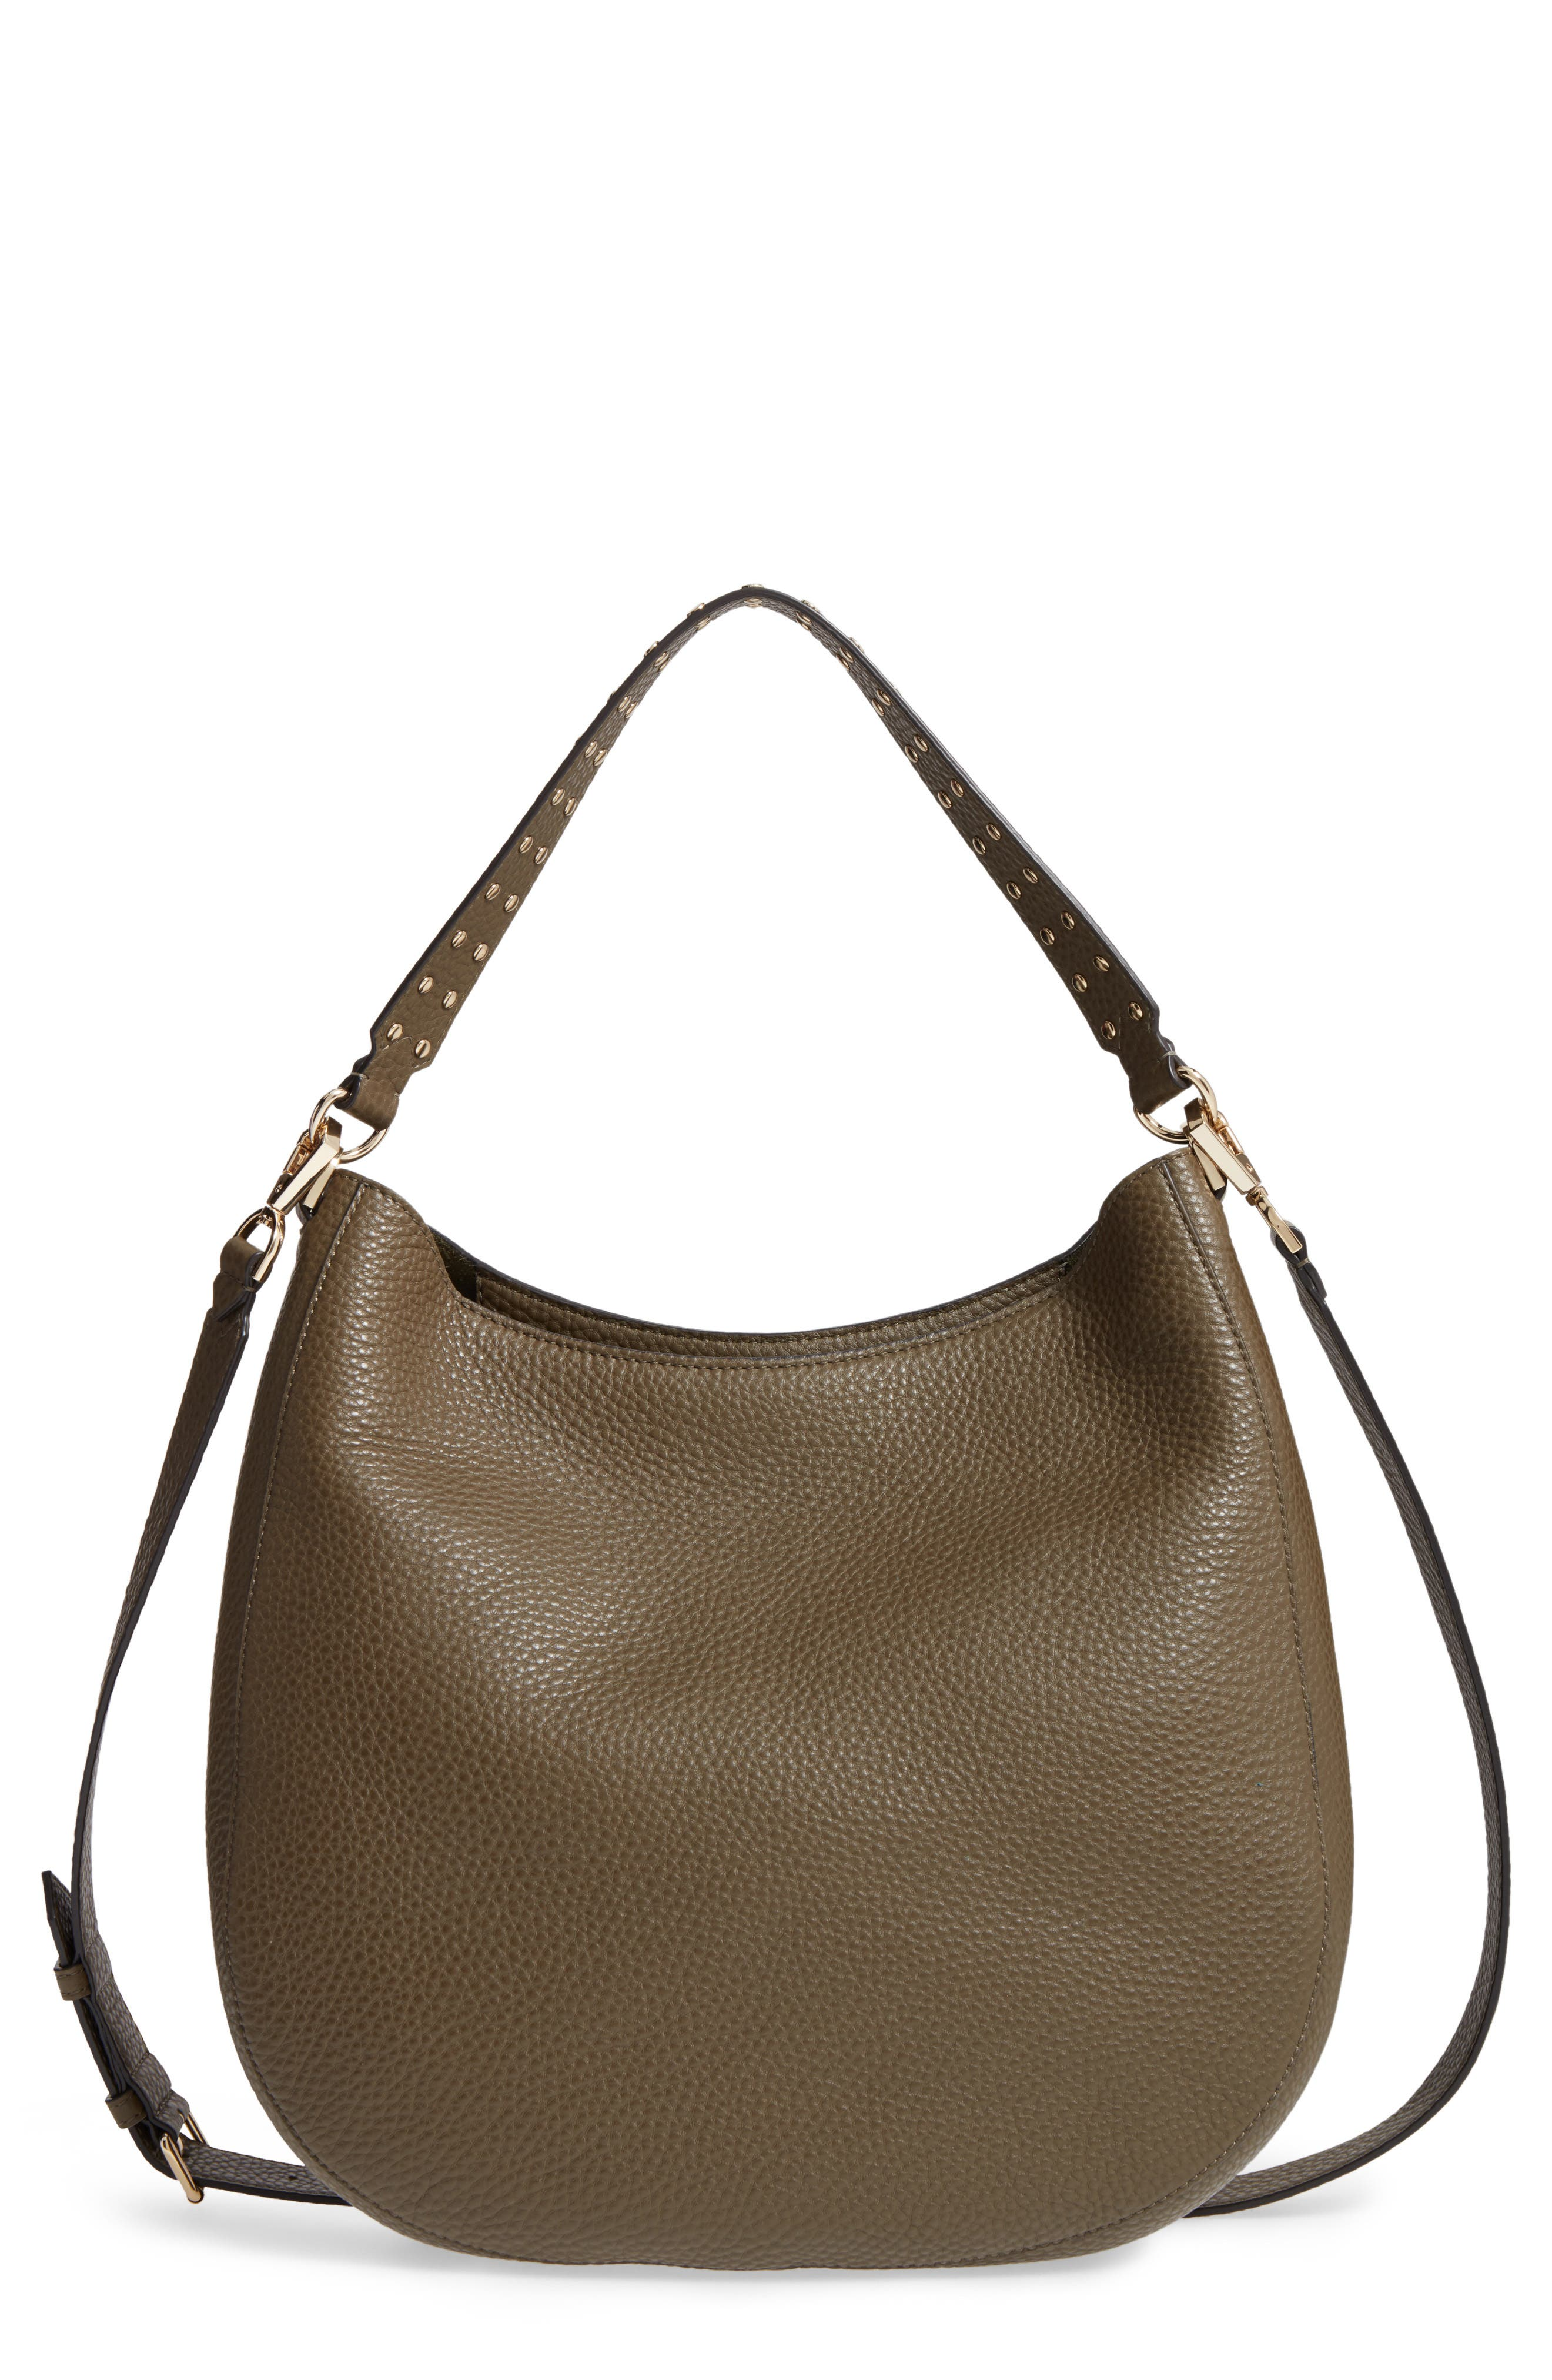 Rebecca Minkoff Unlined Convertible Leather Hobo (Nordstrom Exclusive)